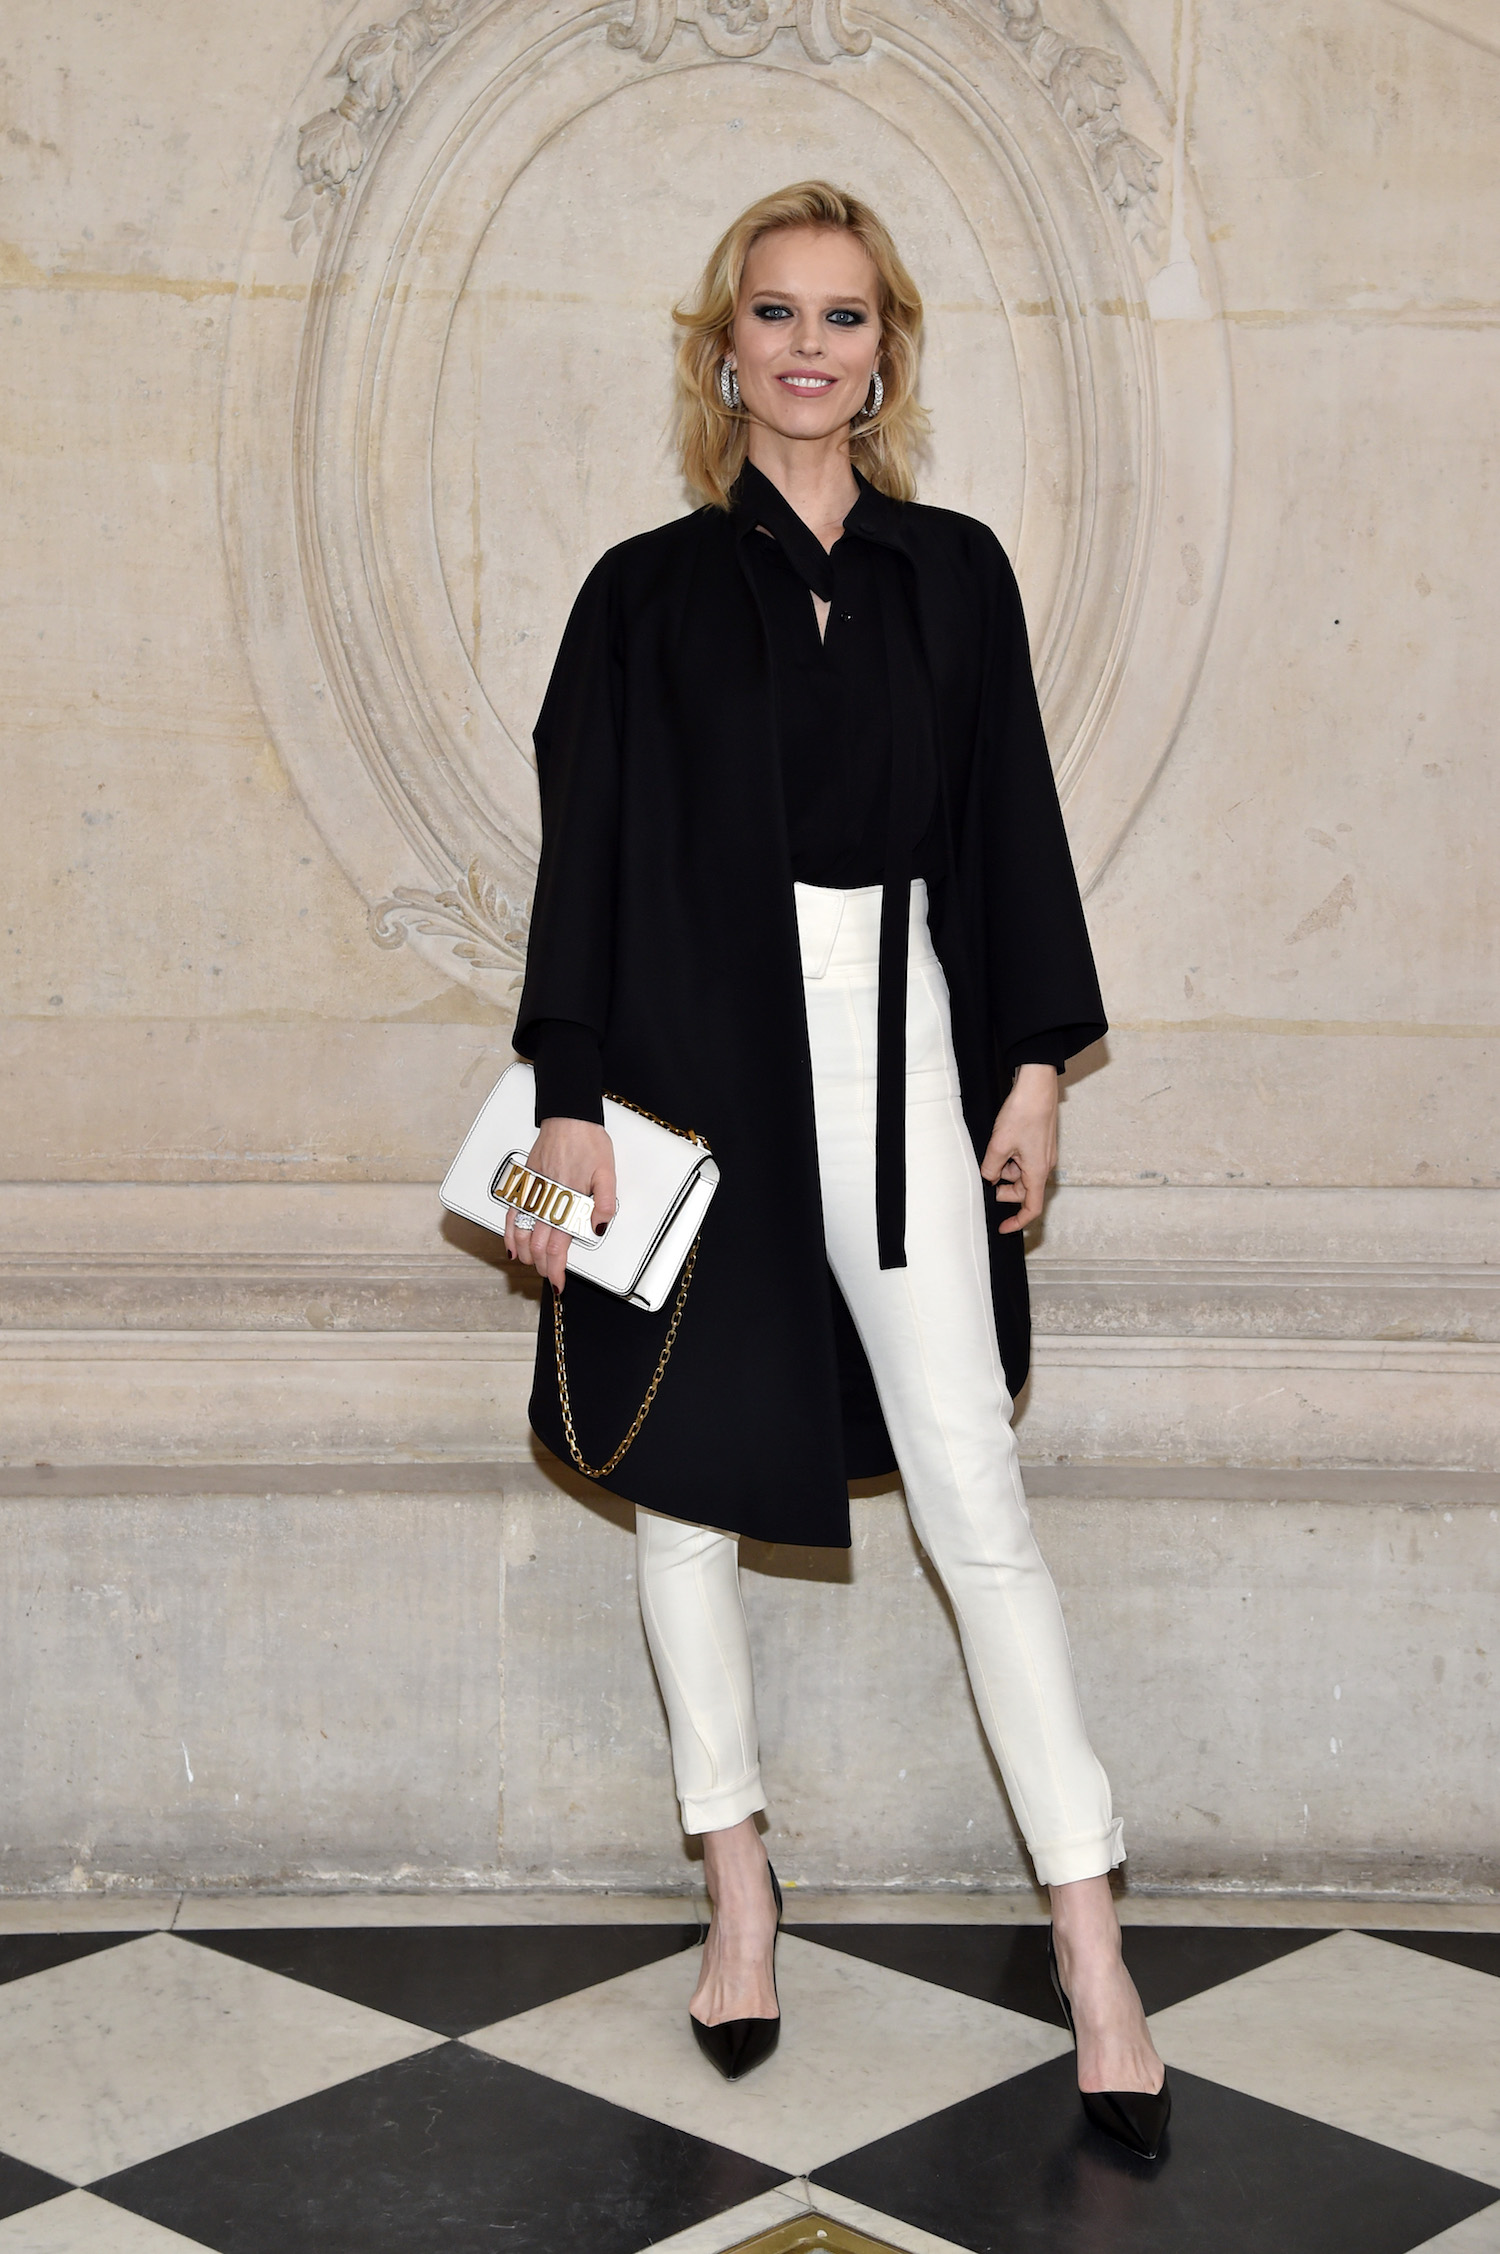 PARIS, FRANCE - JANUARY 23: Eva Herzigova attends the Christian Dior Haute Couture Spring Summer 2017 show as part of Paris Fashion Week on January 23, 2017 in Paris, France. (Photo by Pascal Le Segretain/Getty Images) *** Local Caption *** Eva Herzigova